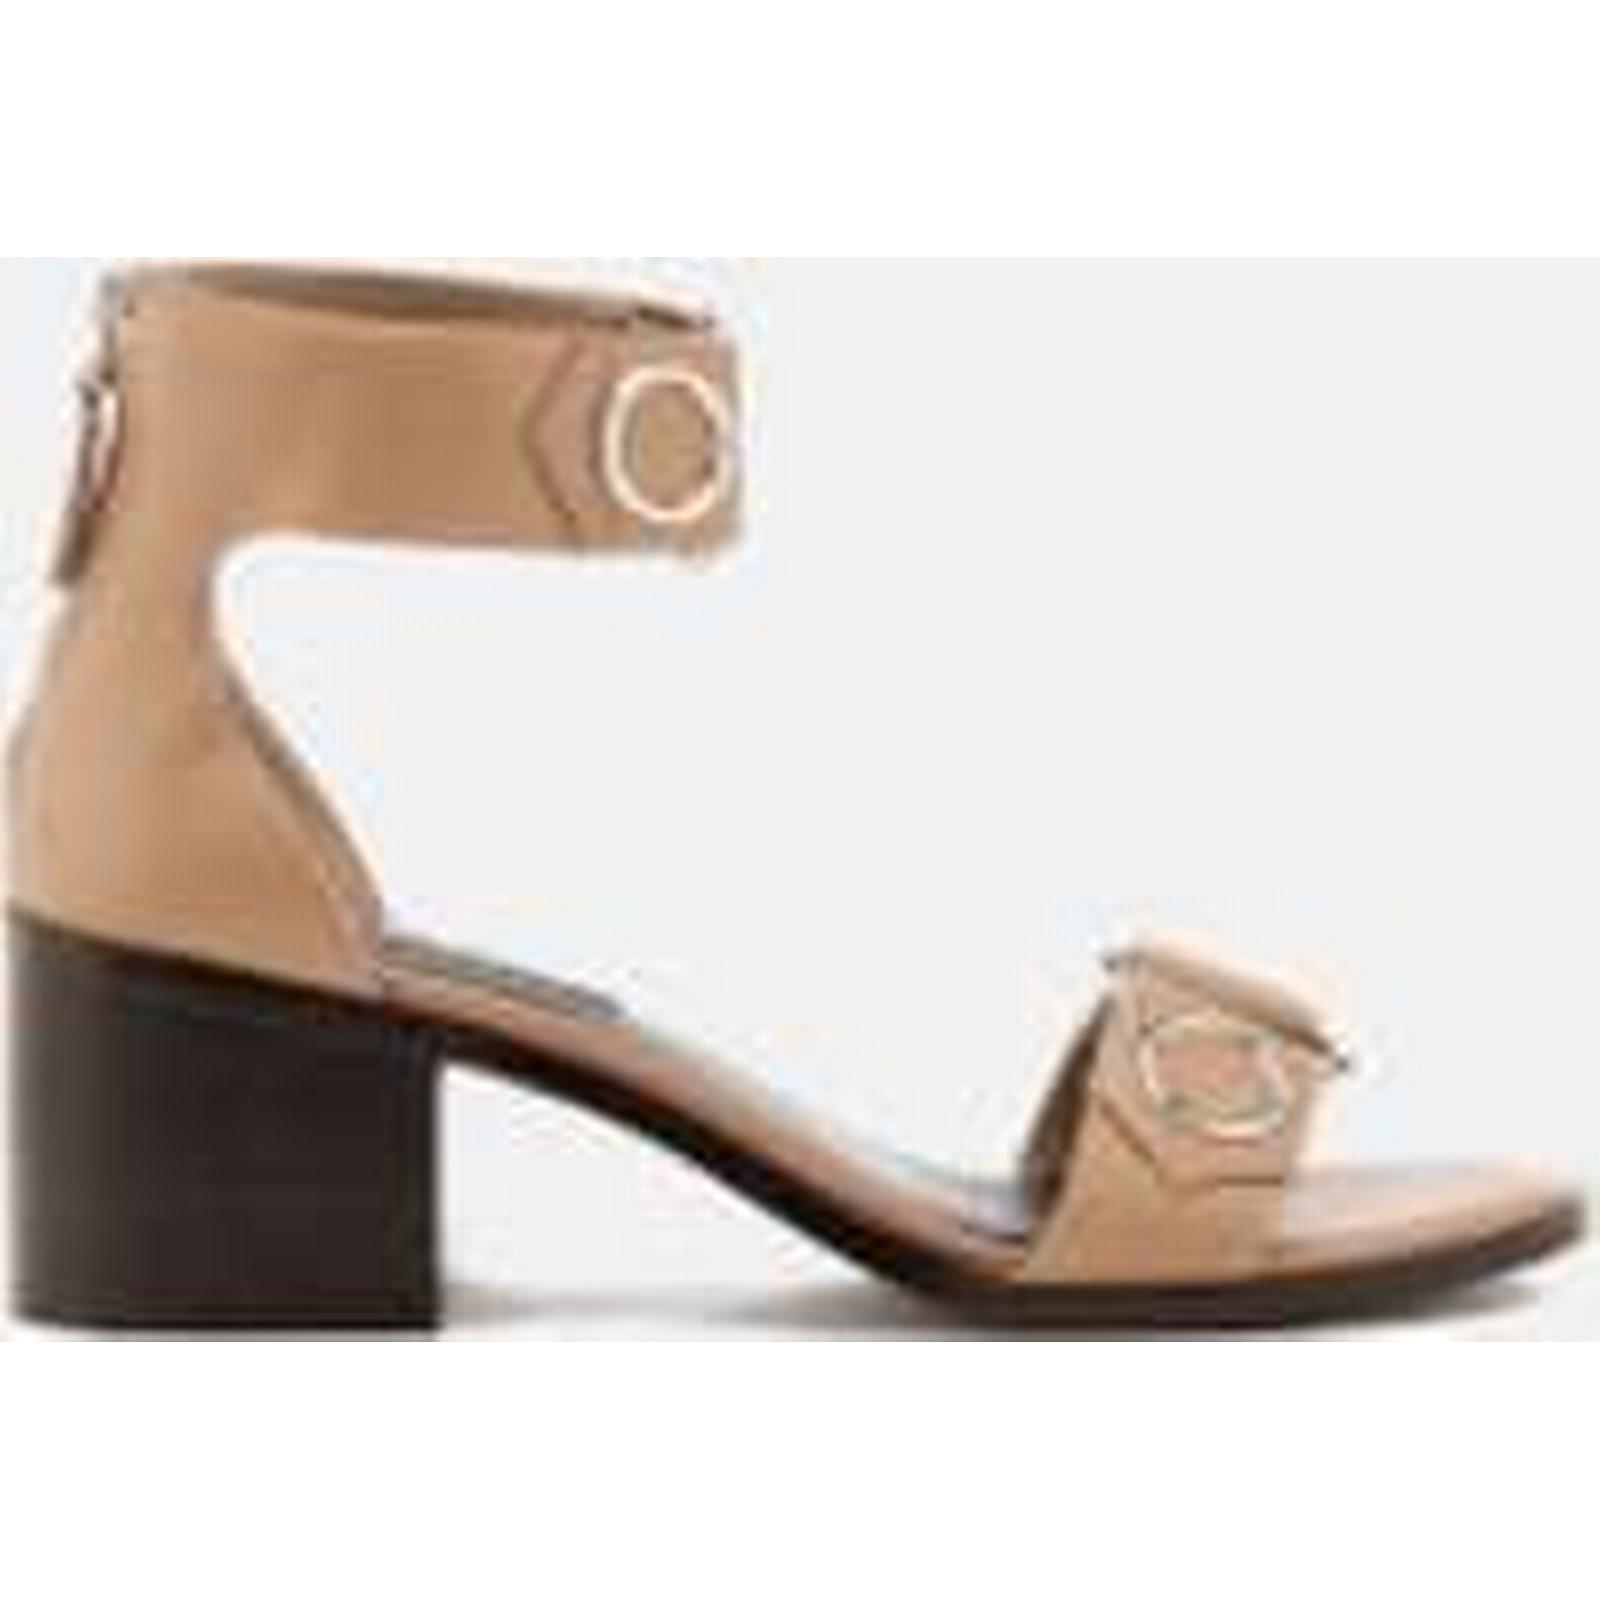 Senso Women's Kendrick Leather Blocked Heeled Sandals - Oatmeal Beige - UK 3 - Beige Oatmeal 1058e9